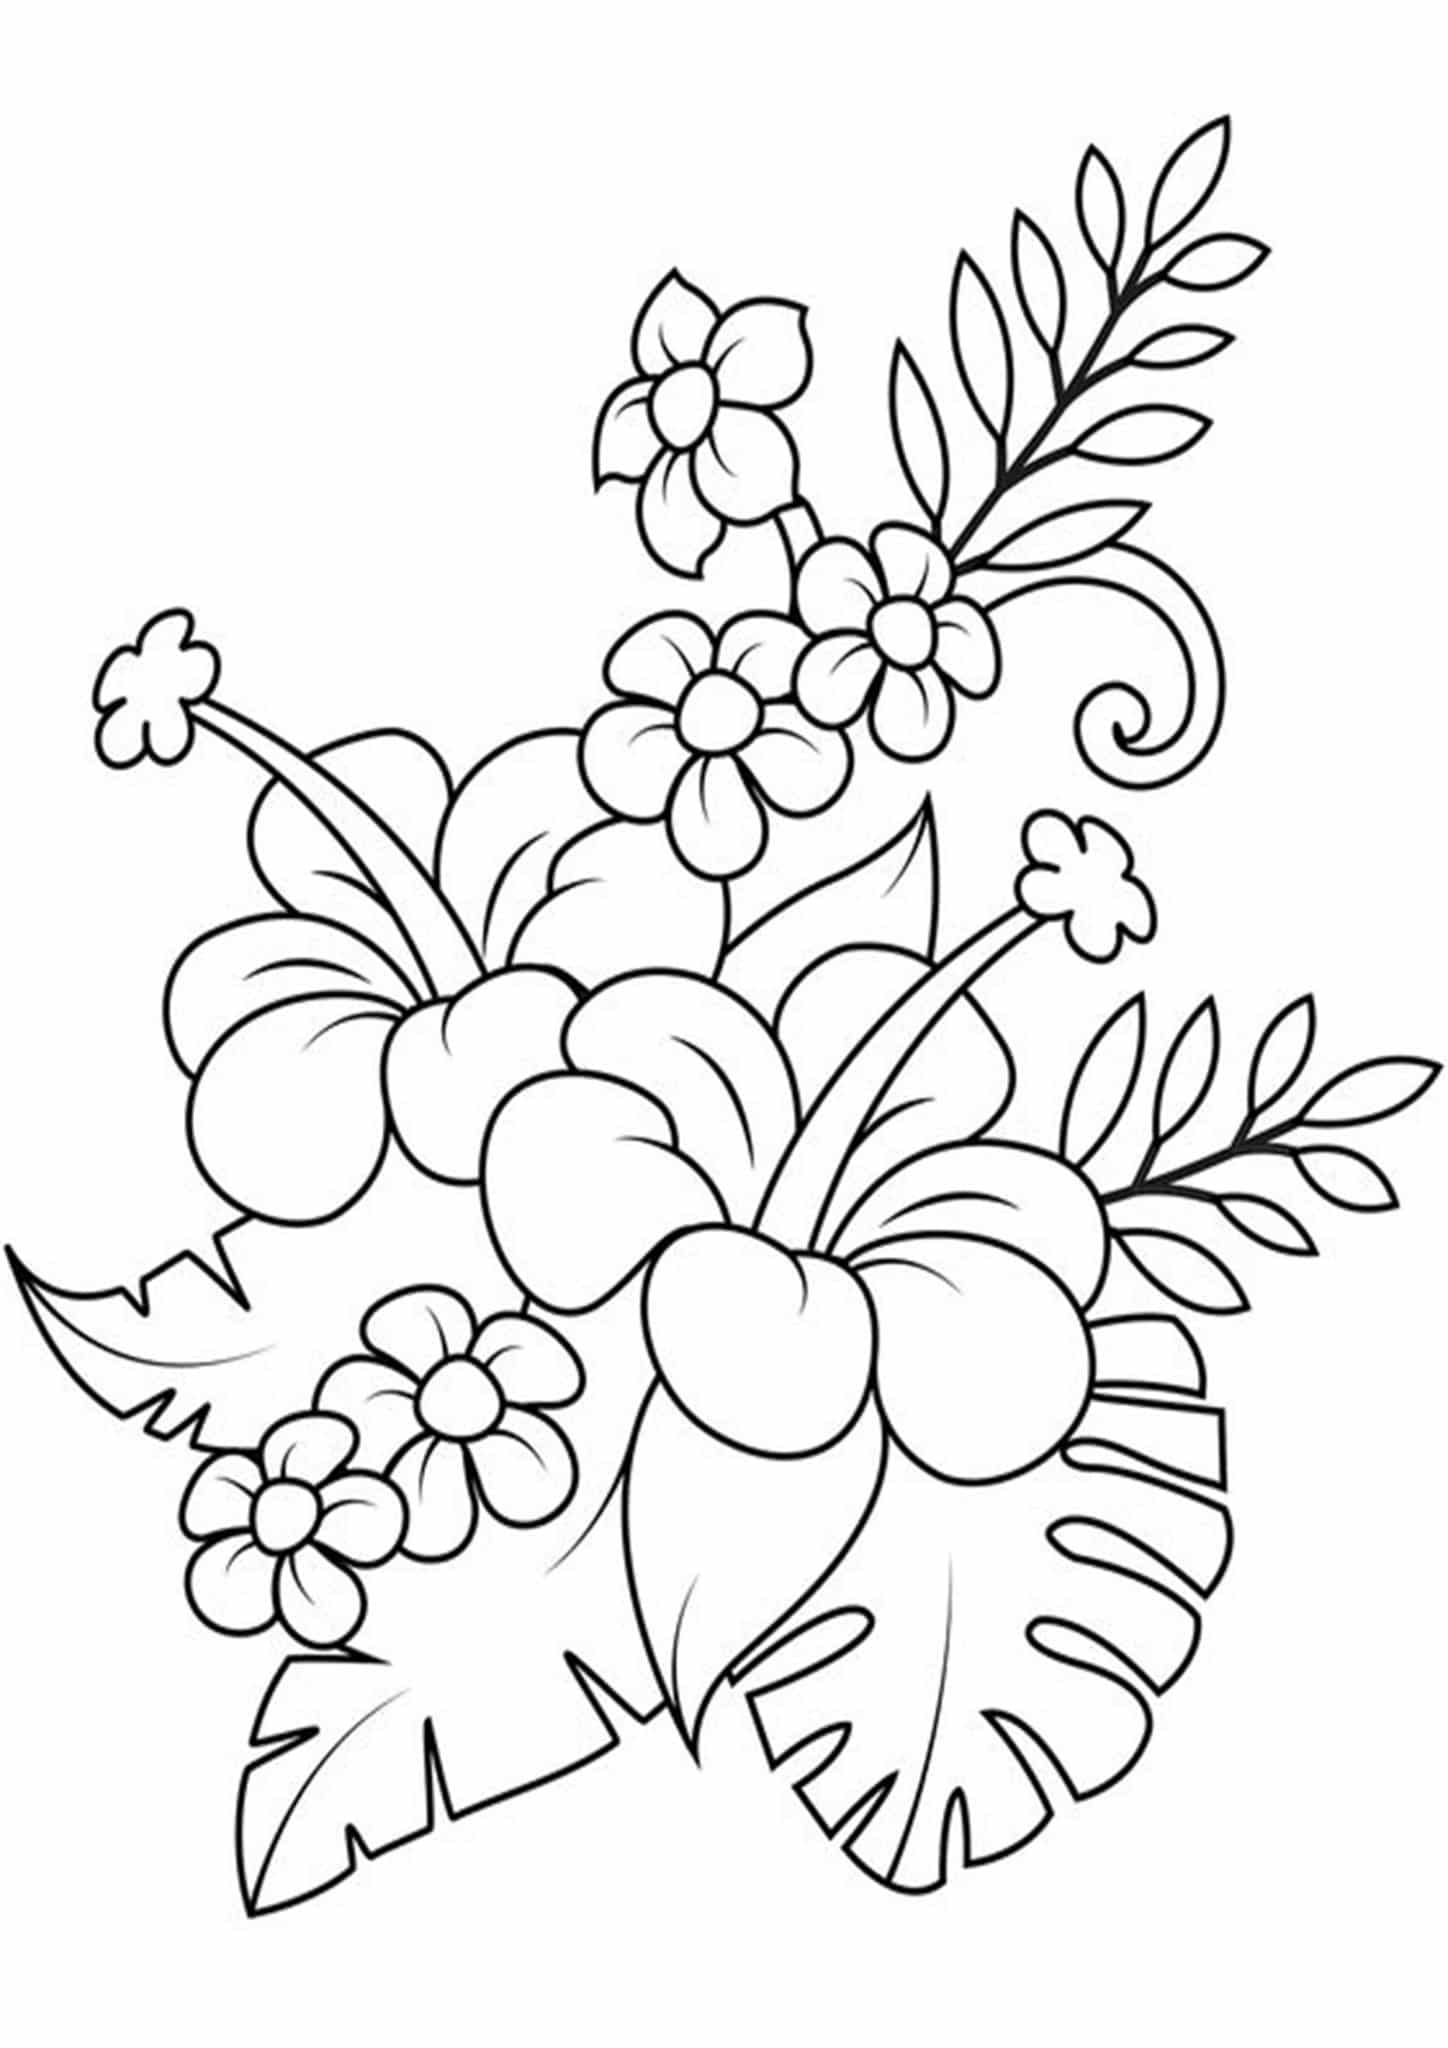 pictures of flowers to color free printables free printable flower coloring pages for kids best flowers pictures printables color free of to